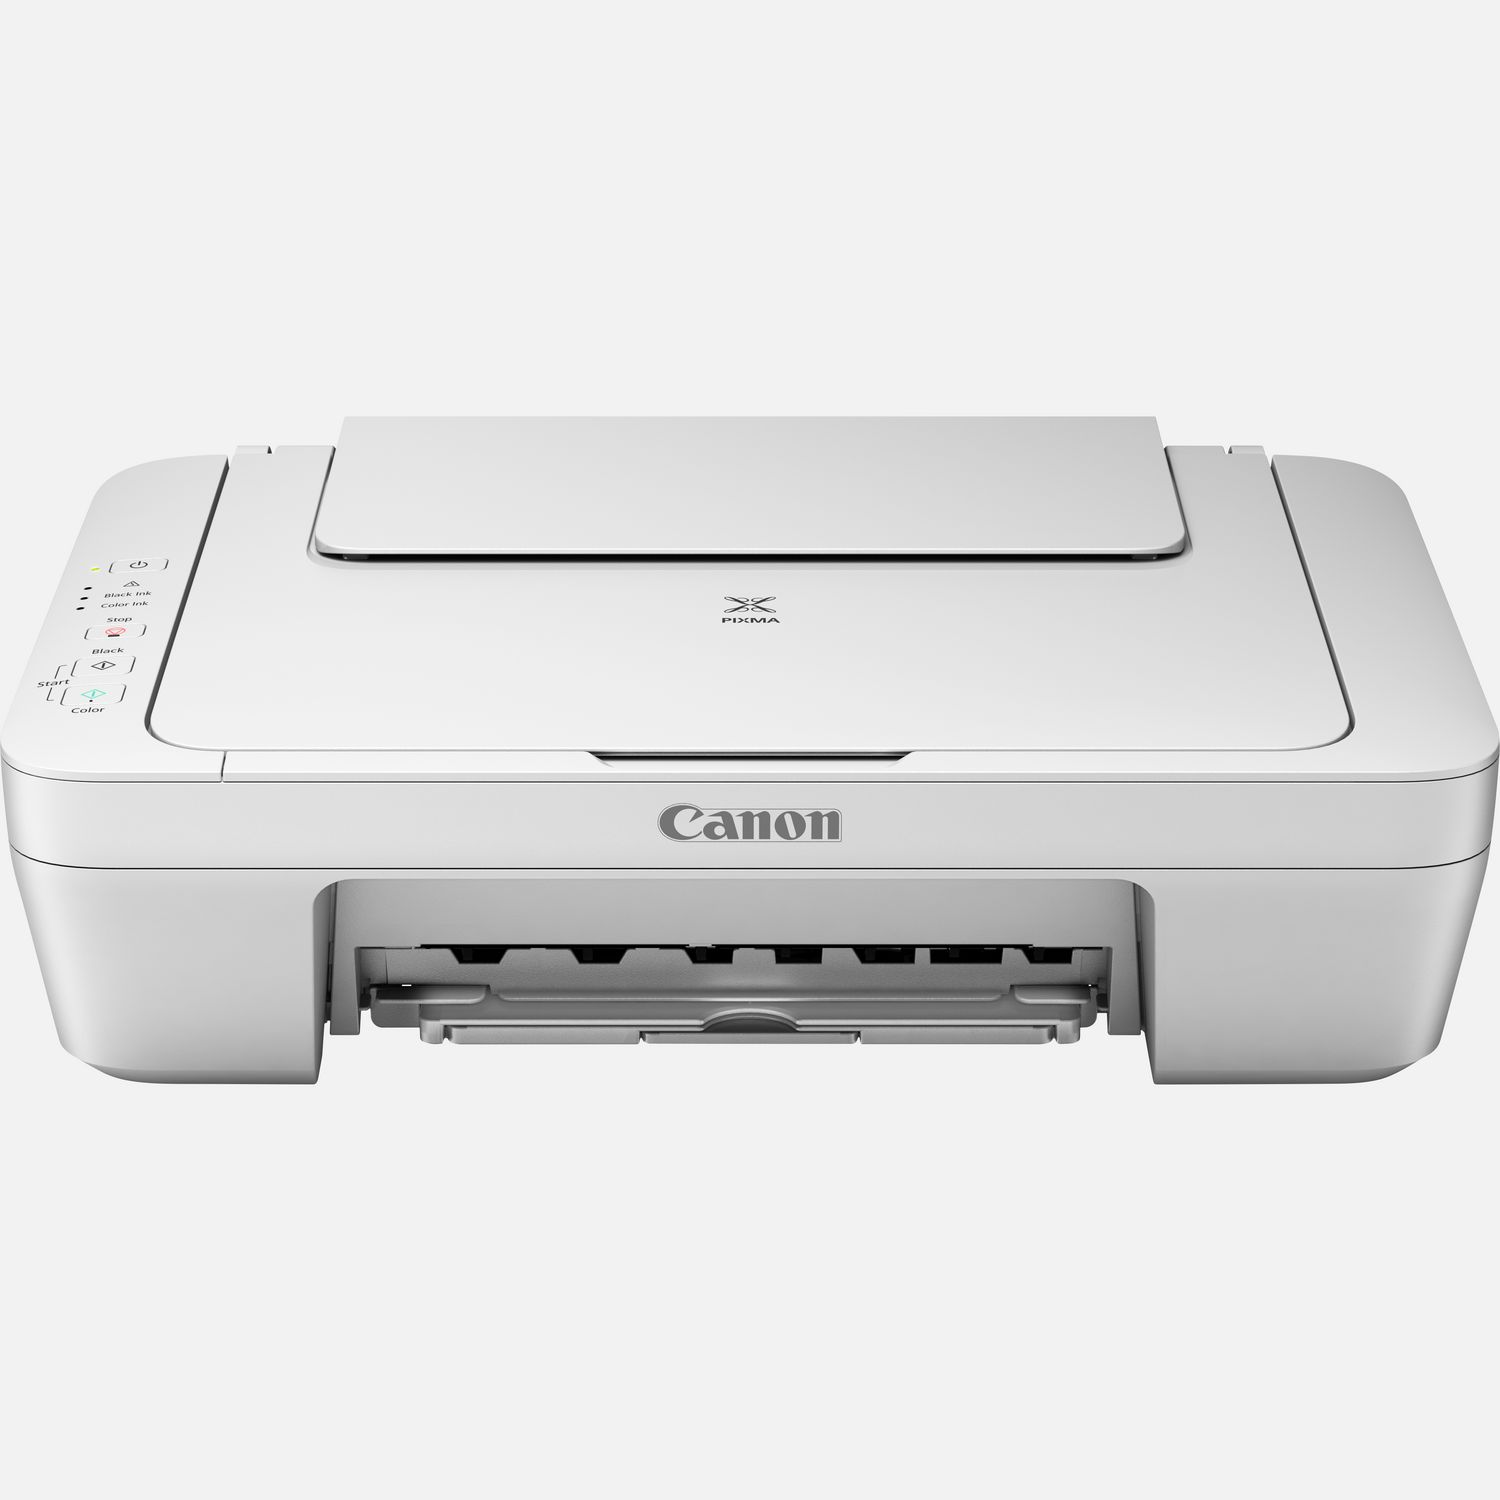 Canon PIXMA MG20 in Abgesetzt at Canon